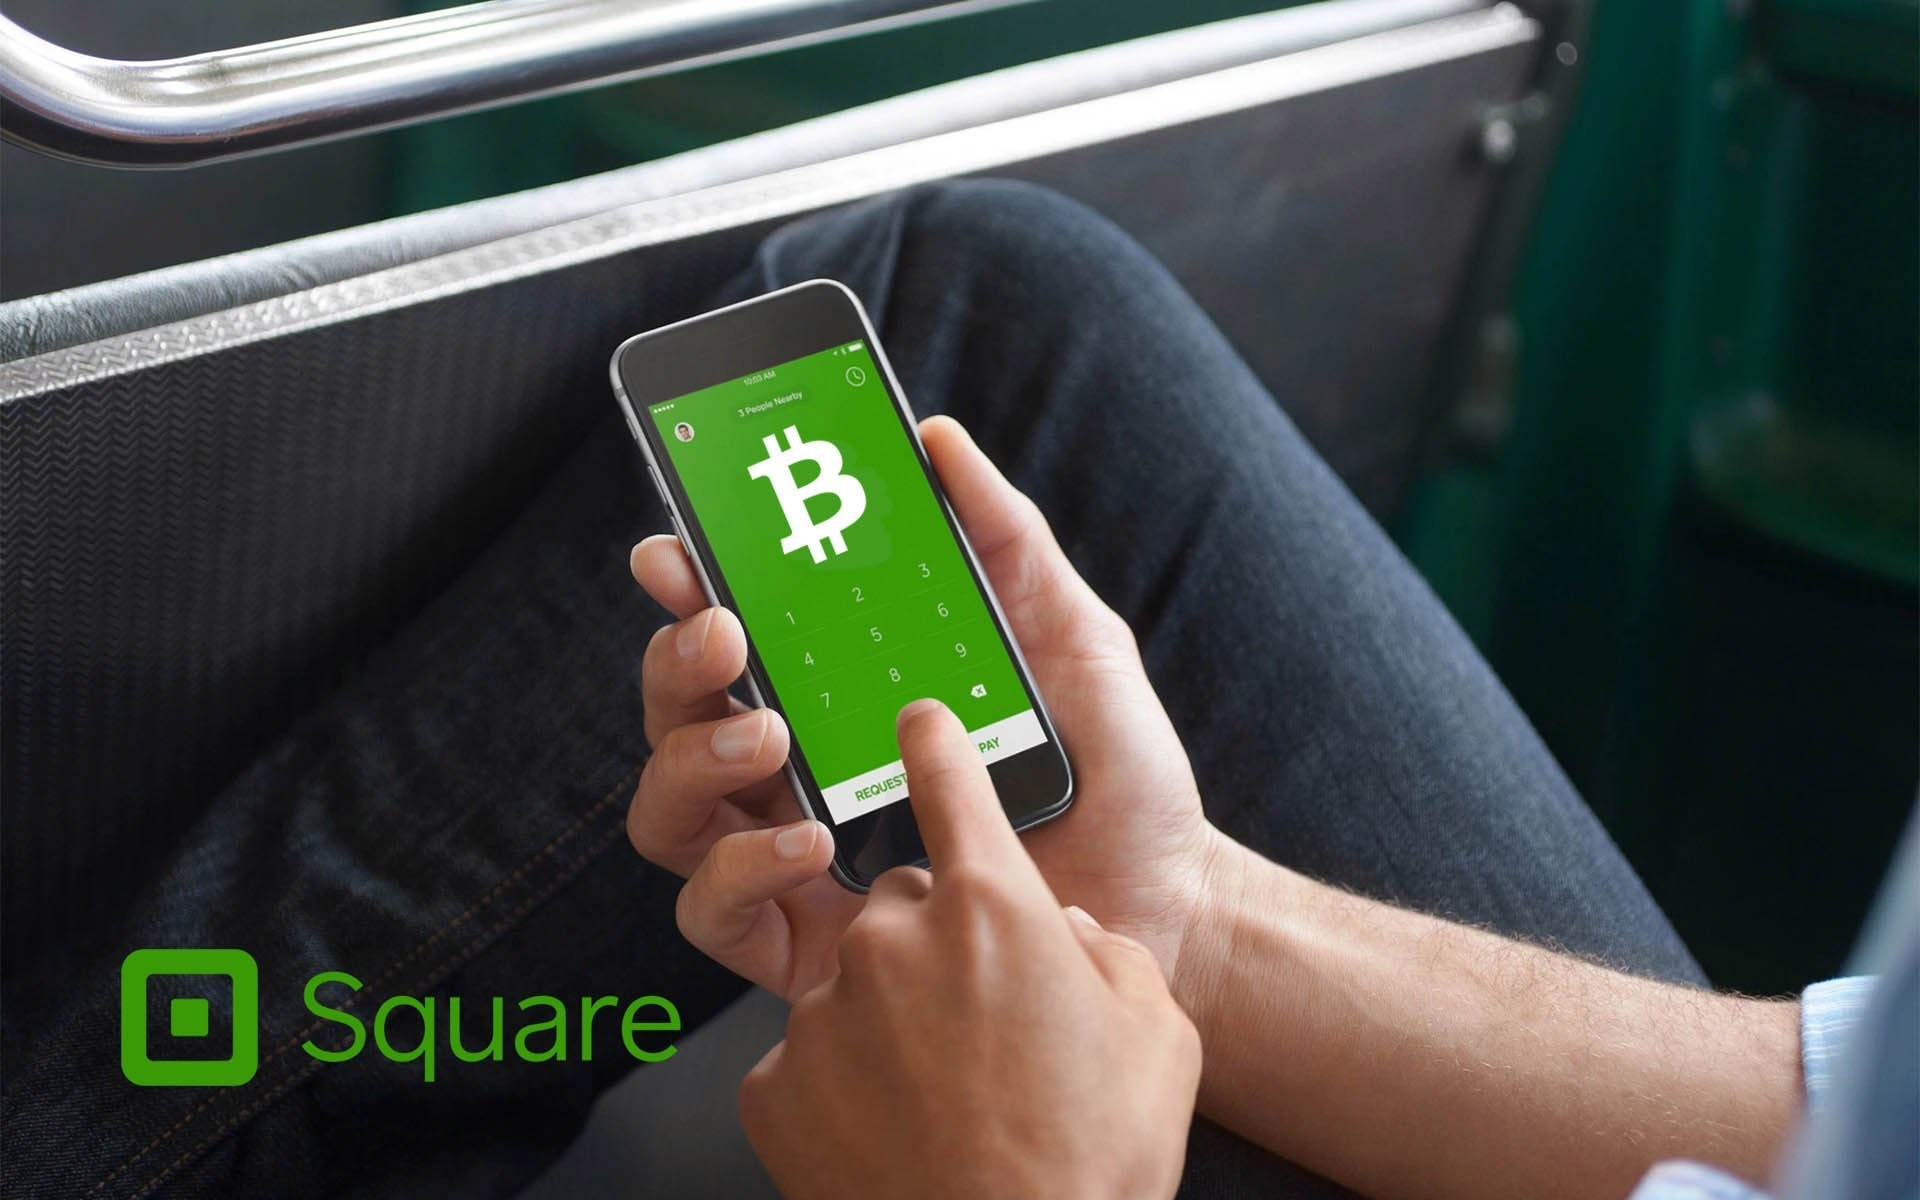 Square Cash App Tests Bitcoin Buying and Selling